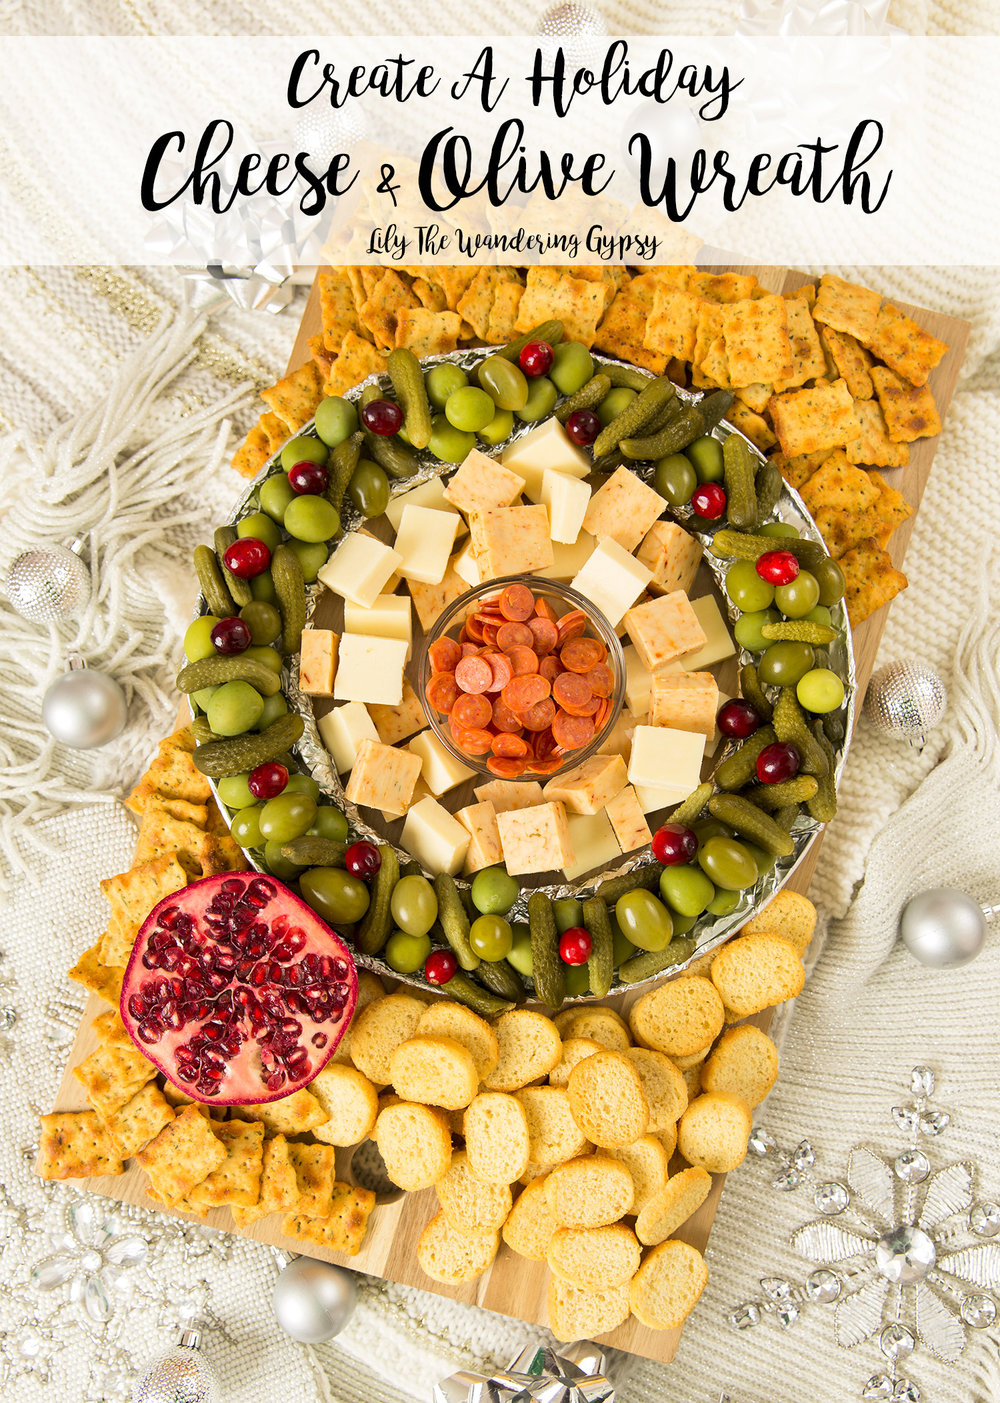 Learn tips and tricks on how to make an Olive Wreath Holiday Cheese Board.